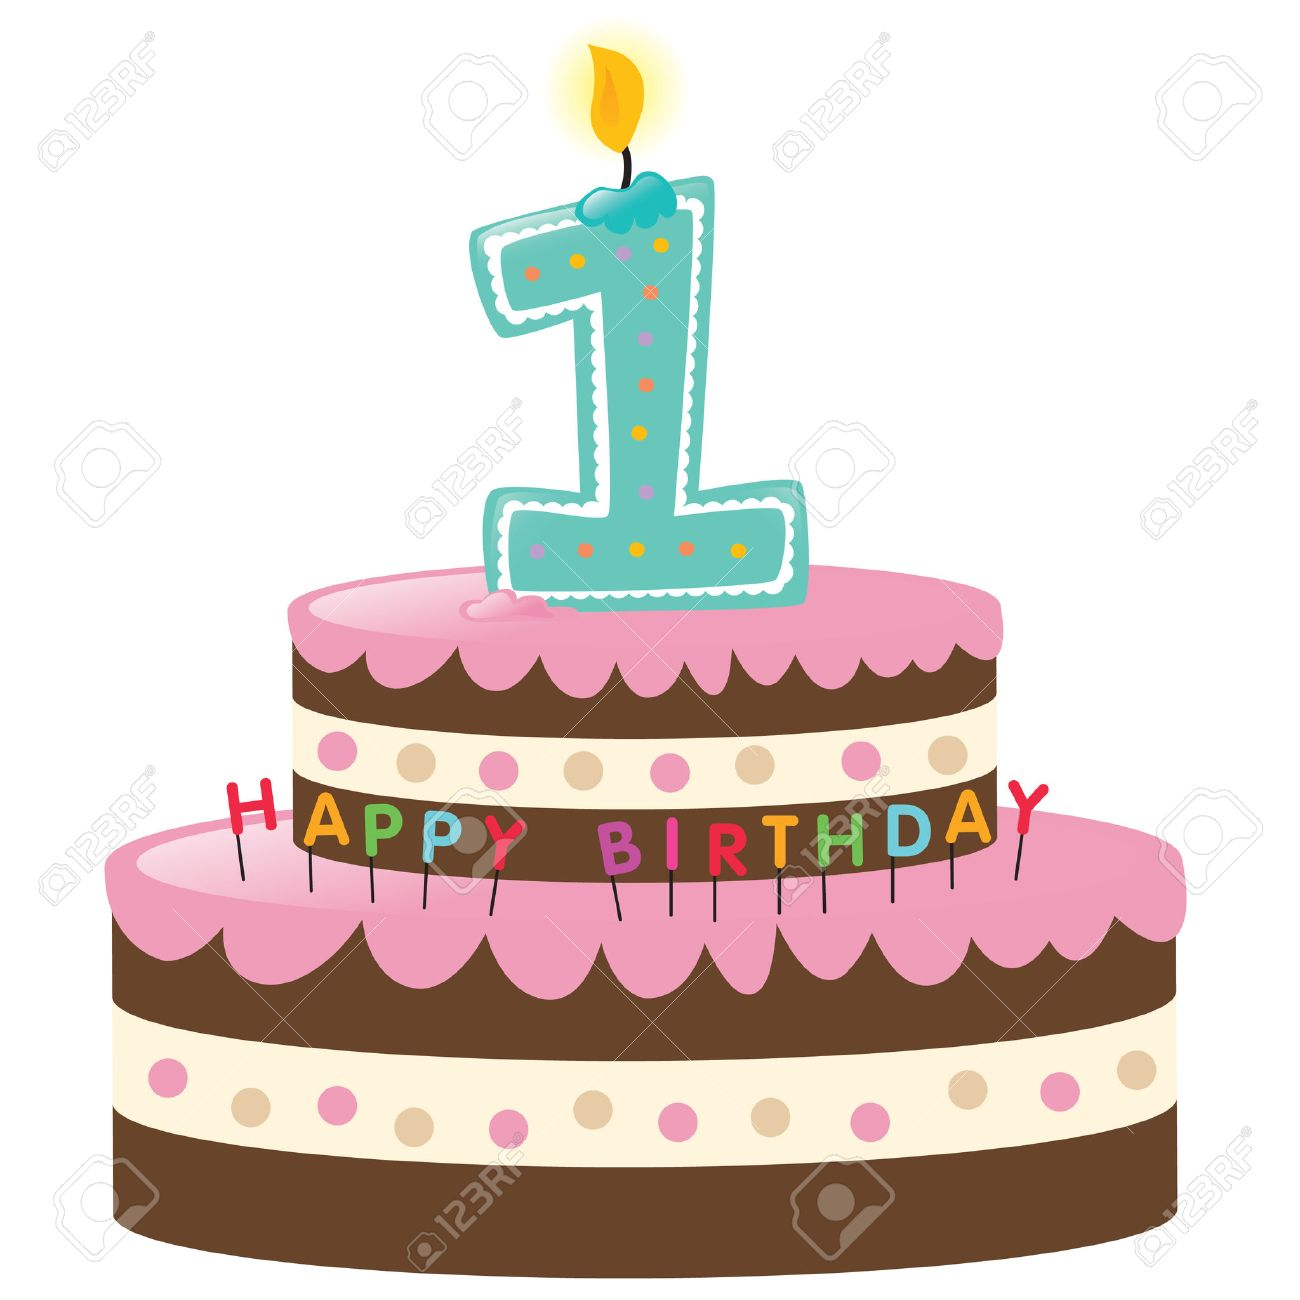 Happy First Birthday Cake With Candle Royalty Free Cliparts, Vectors ...